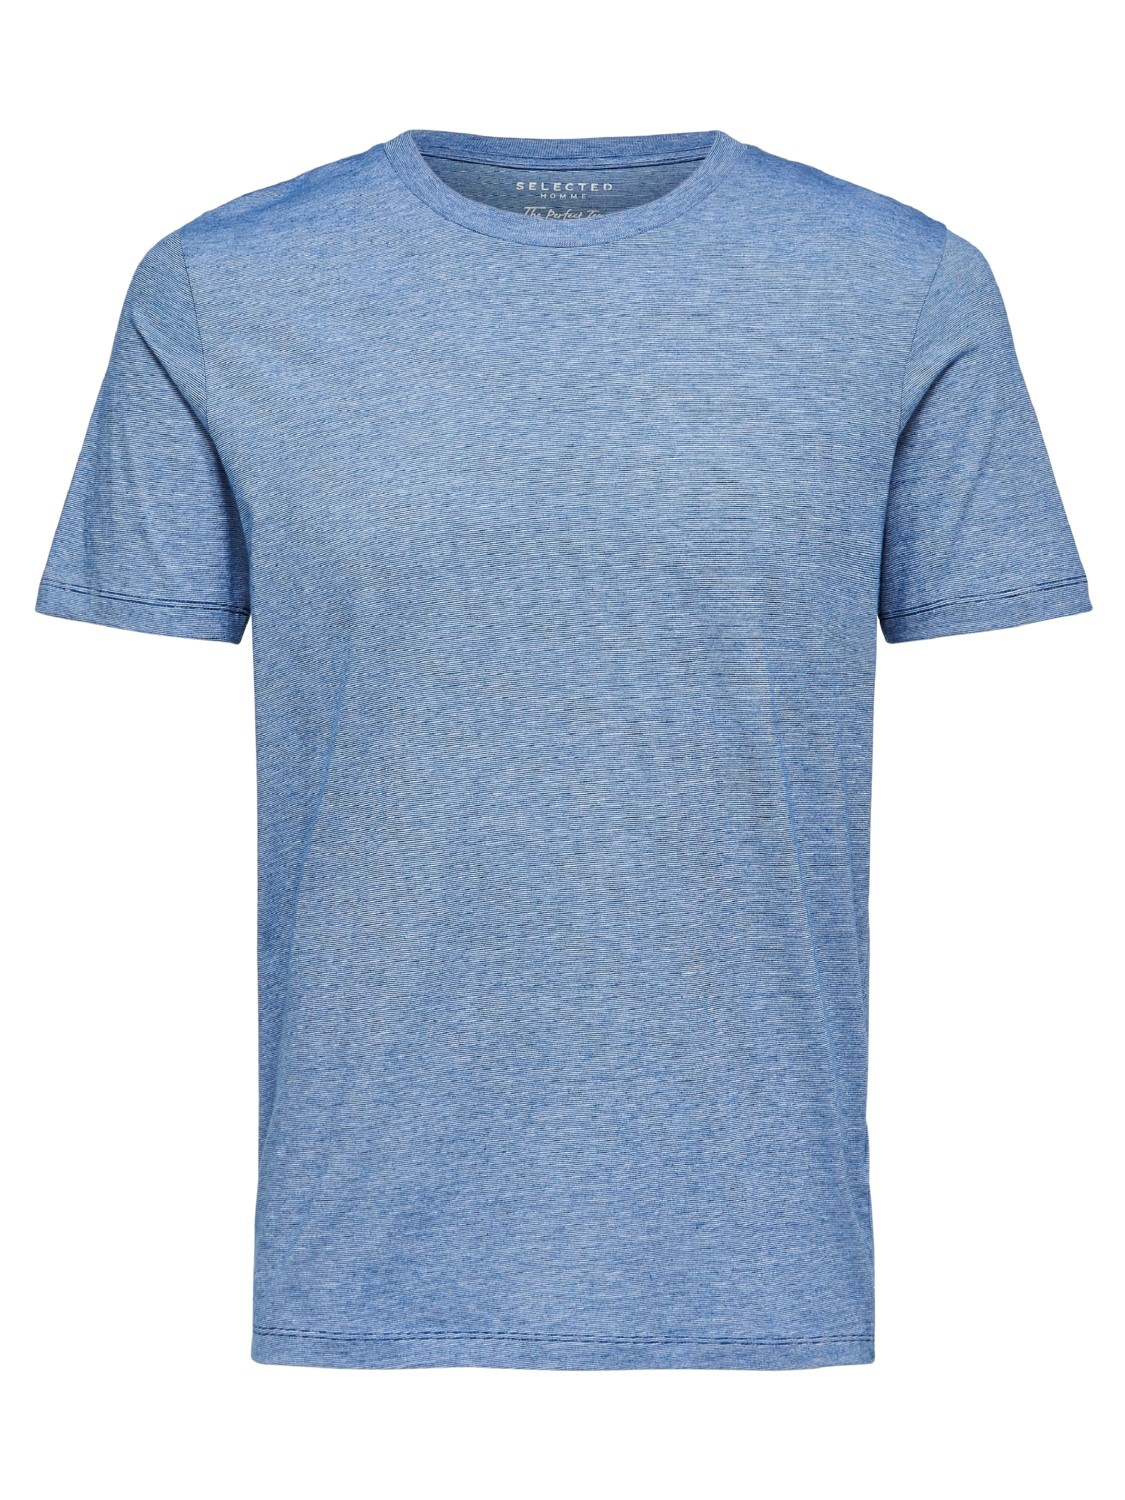 selected-herren-t-shirt-slhtheperfect-mel-ss-o-neck